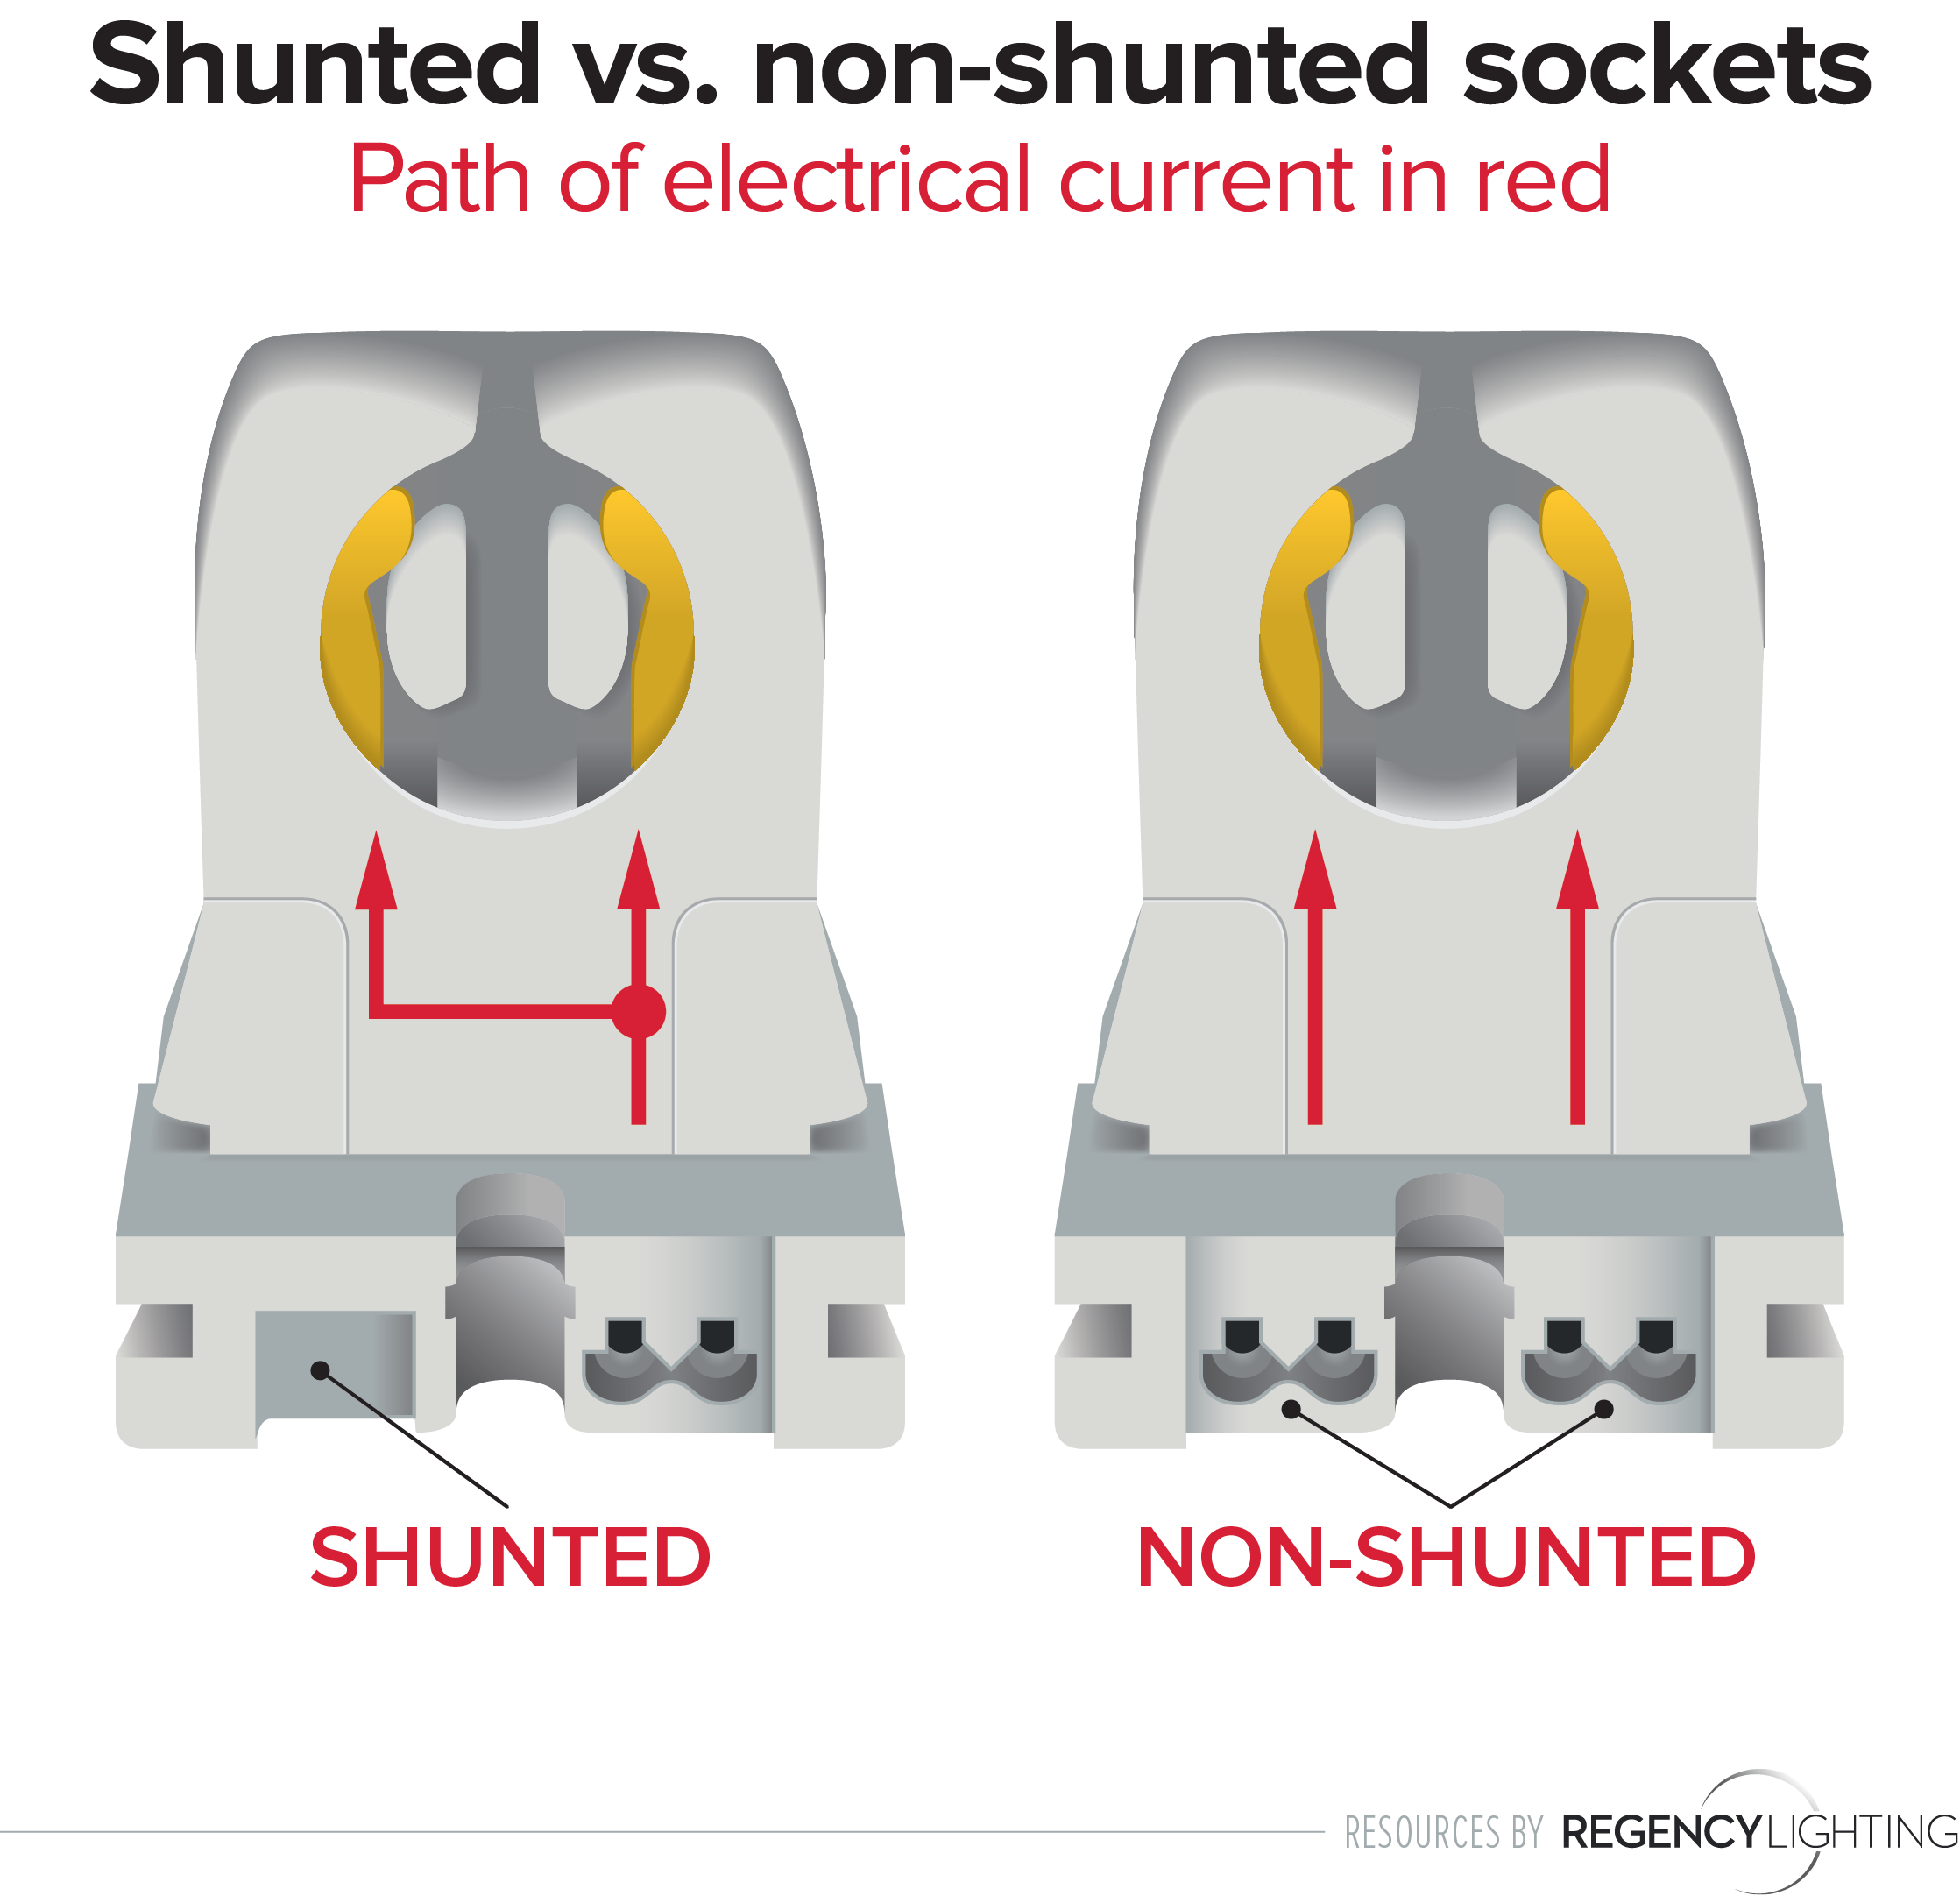 shunted sockets illustration 2?t=1512511005527&width=506&name=shunted sockets illustration 2 shunted vs non shunted sockets how to tell what you need  at n-0.co